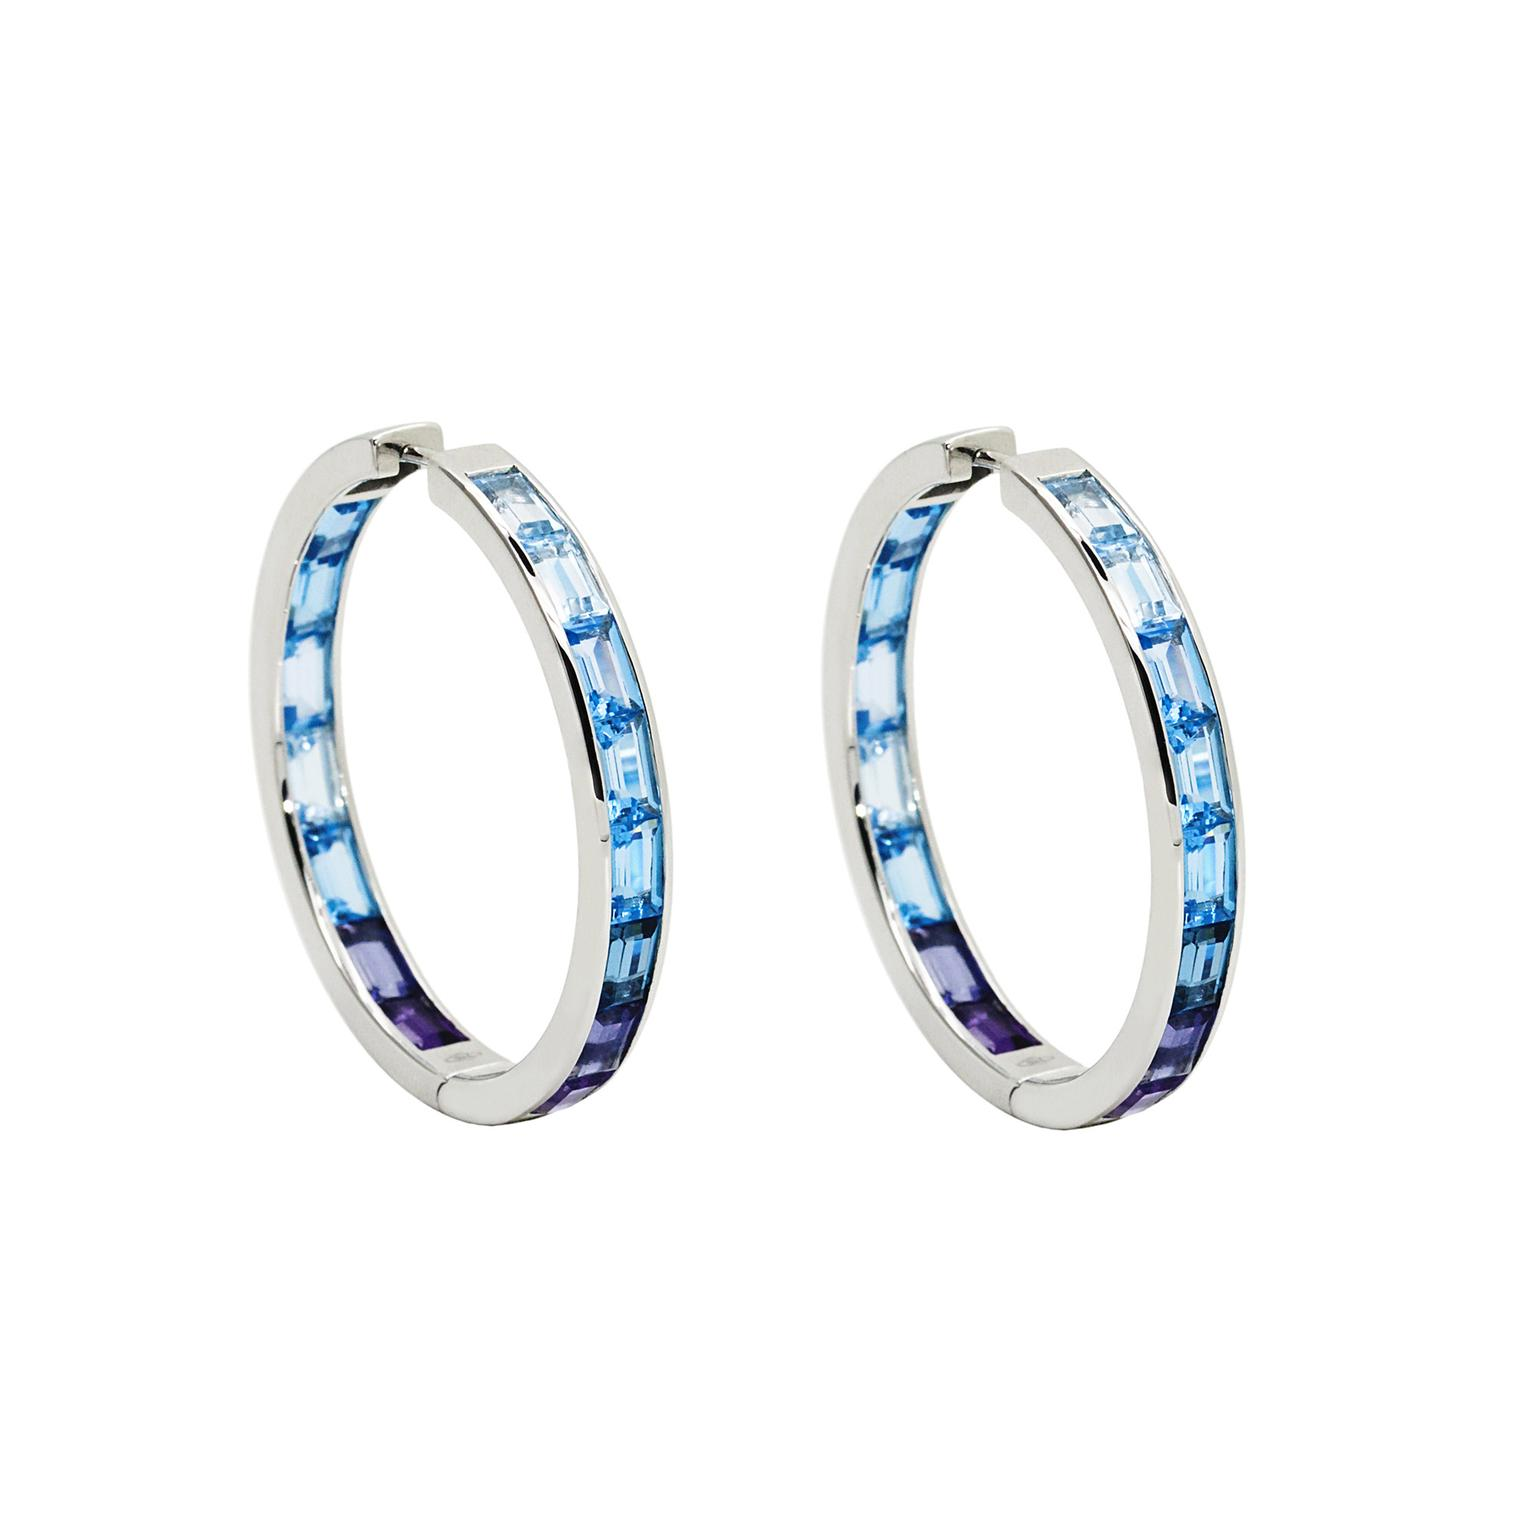 Daou Morning multicolour gemstone hoop earrings in white gold